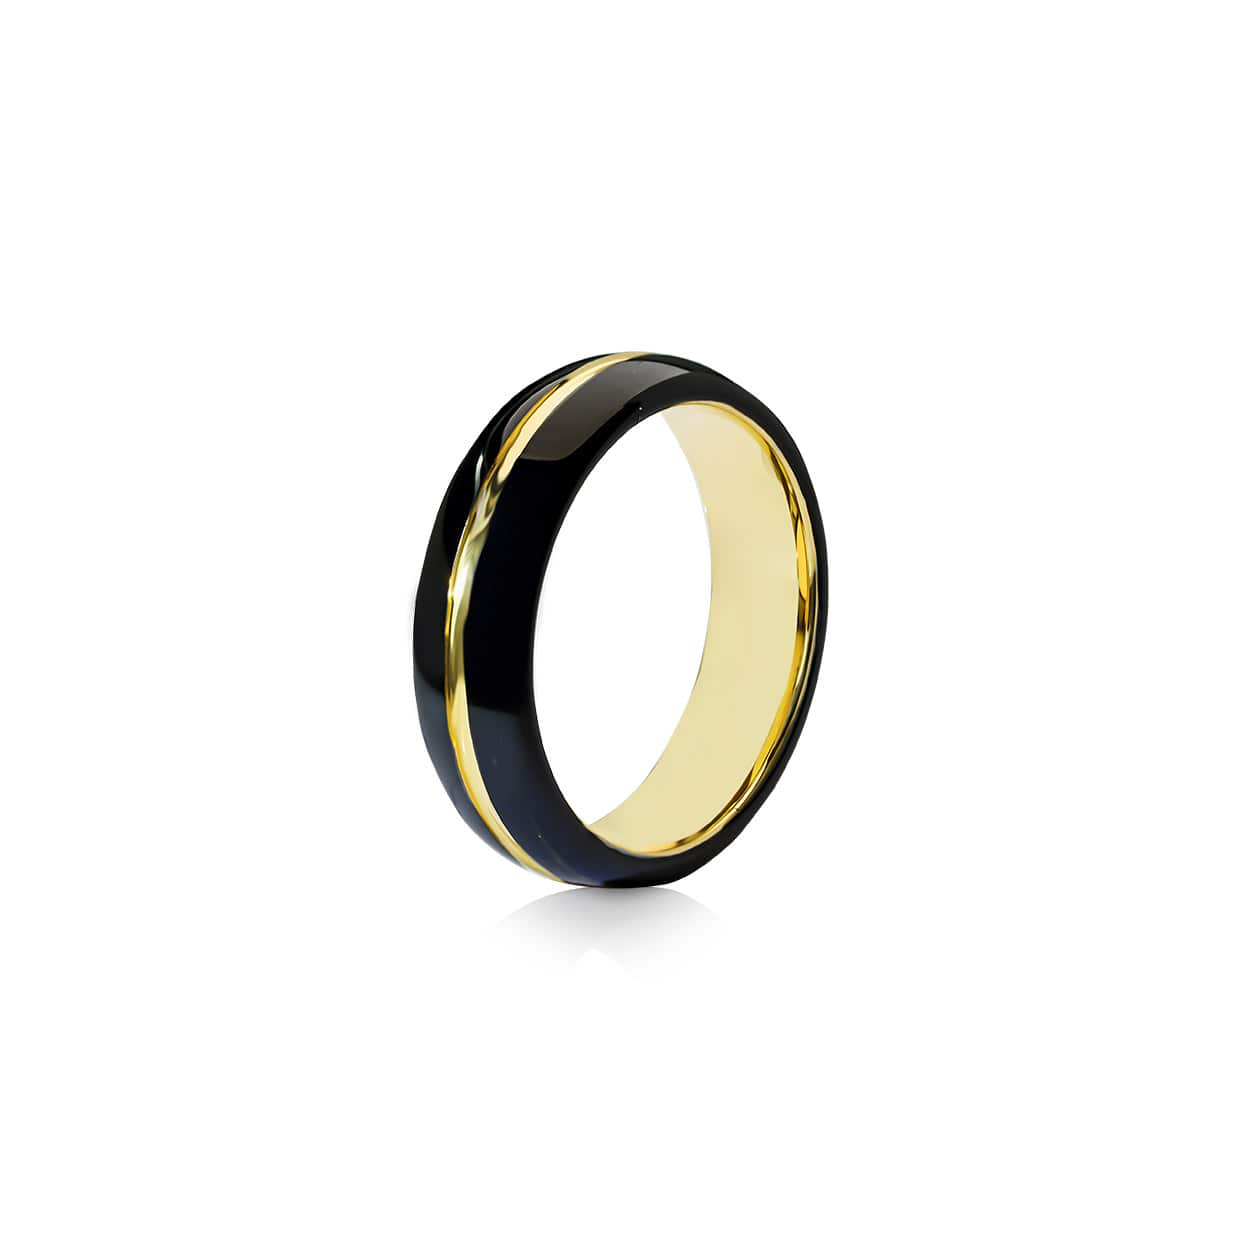 Tungsten Ring Black & Golden - Abelstedt